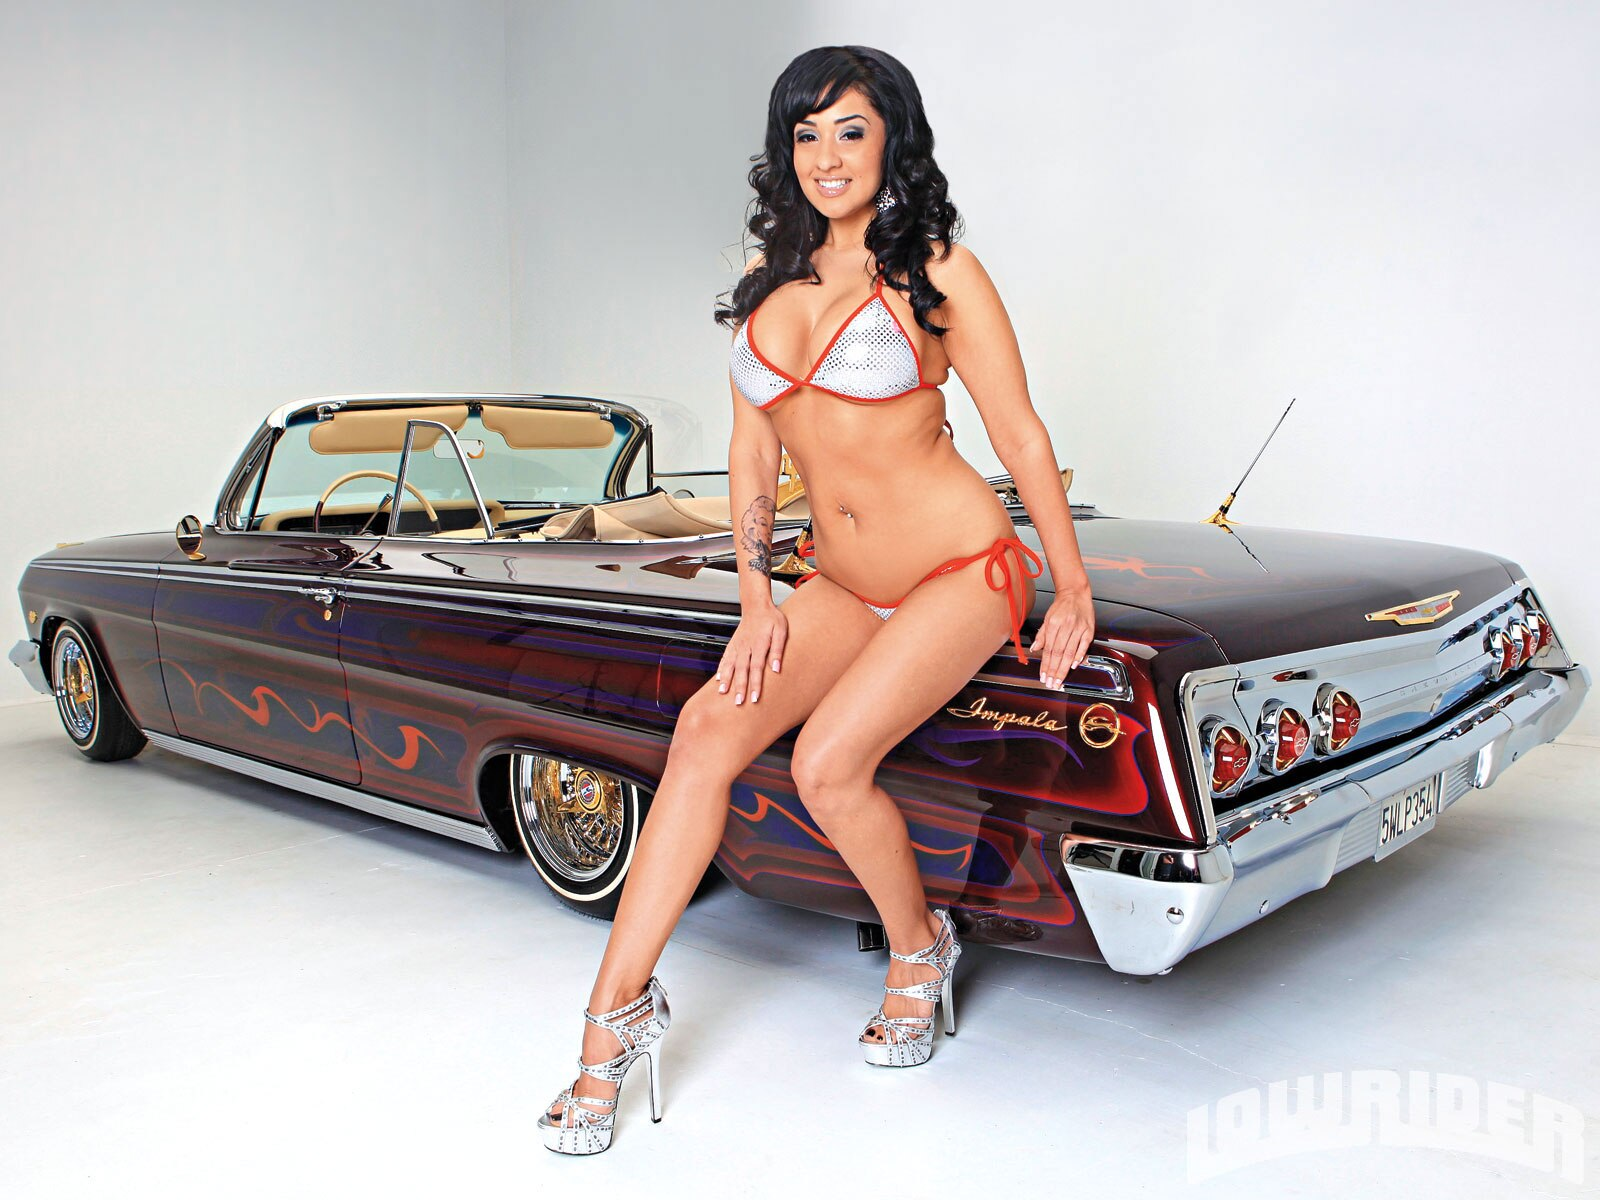 1105-lrms-01-o-ralina-lia-lowrider-girls-model-2